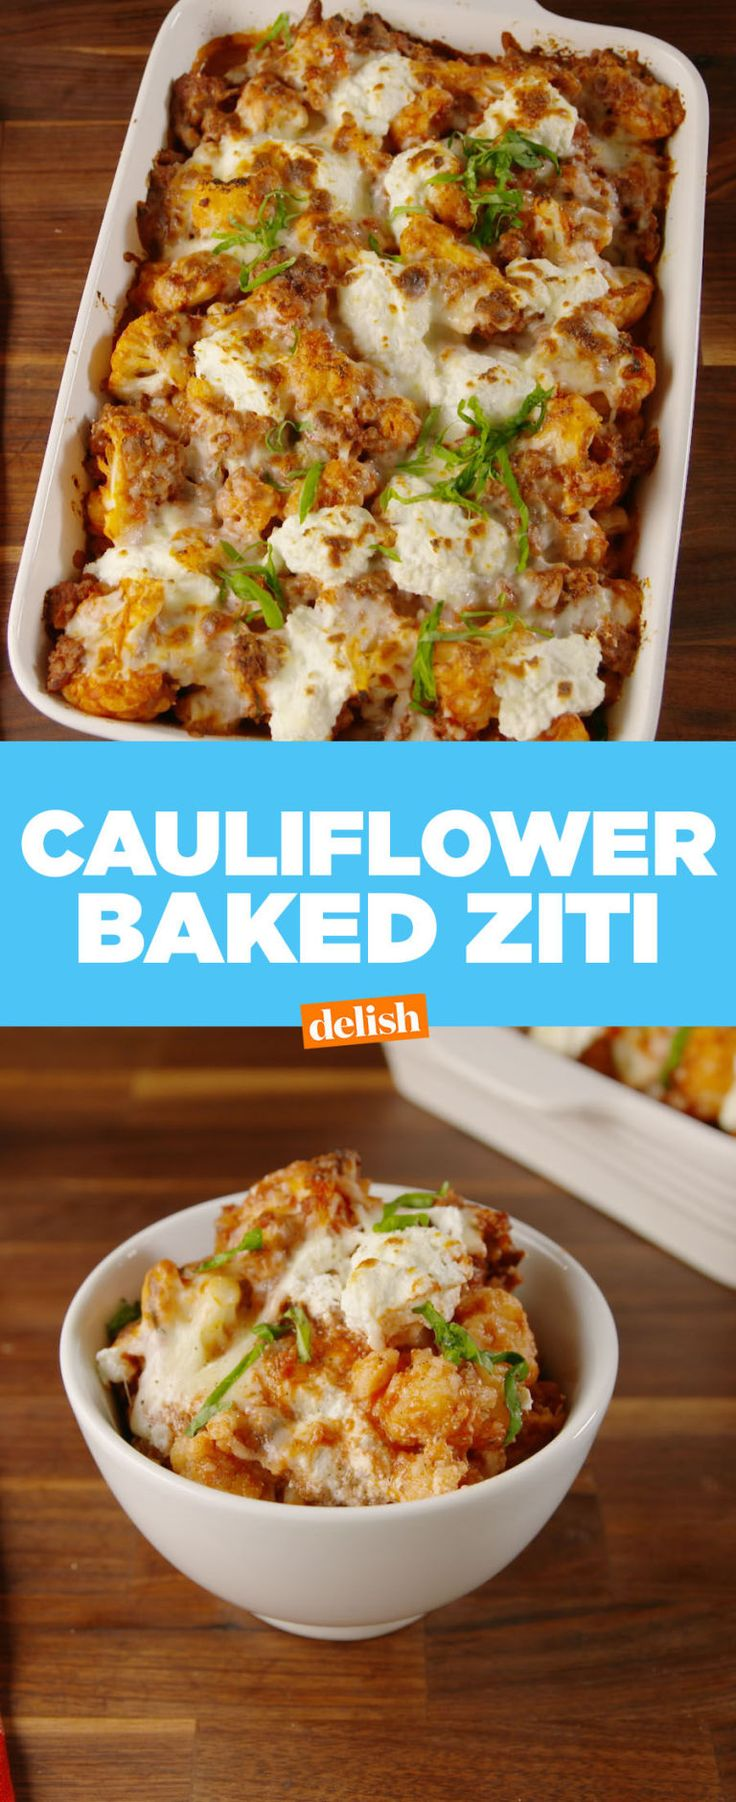 Cauliflower Baked Ziti  - Delish.com